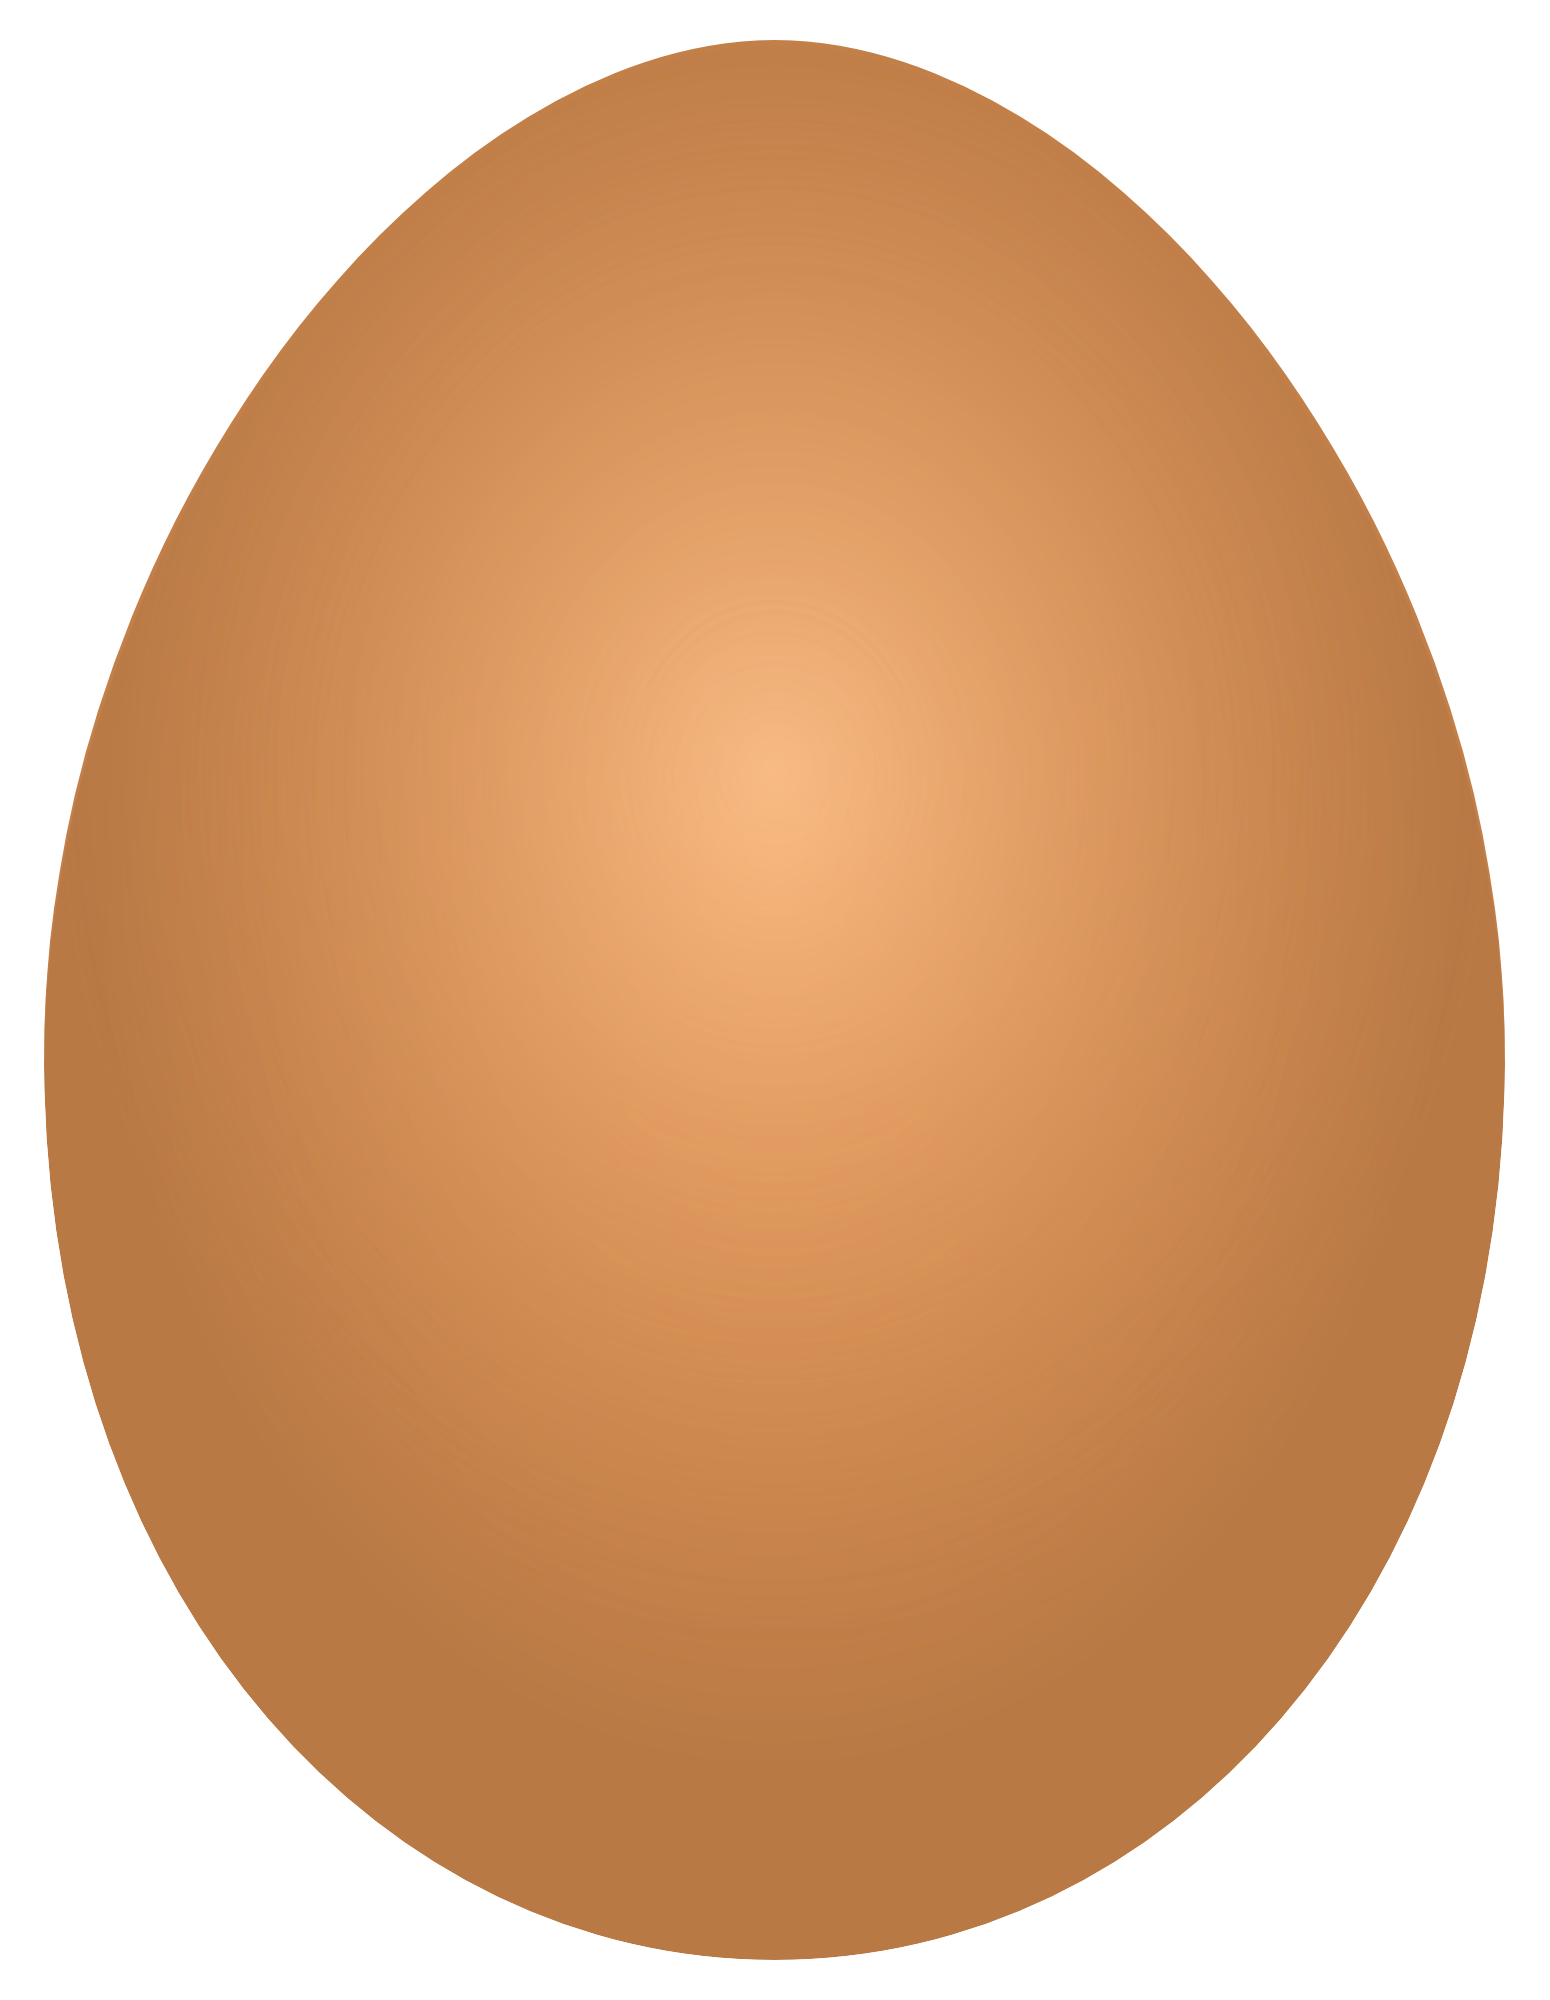 Egg PNG - 18566